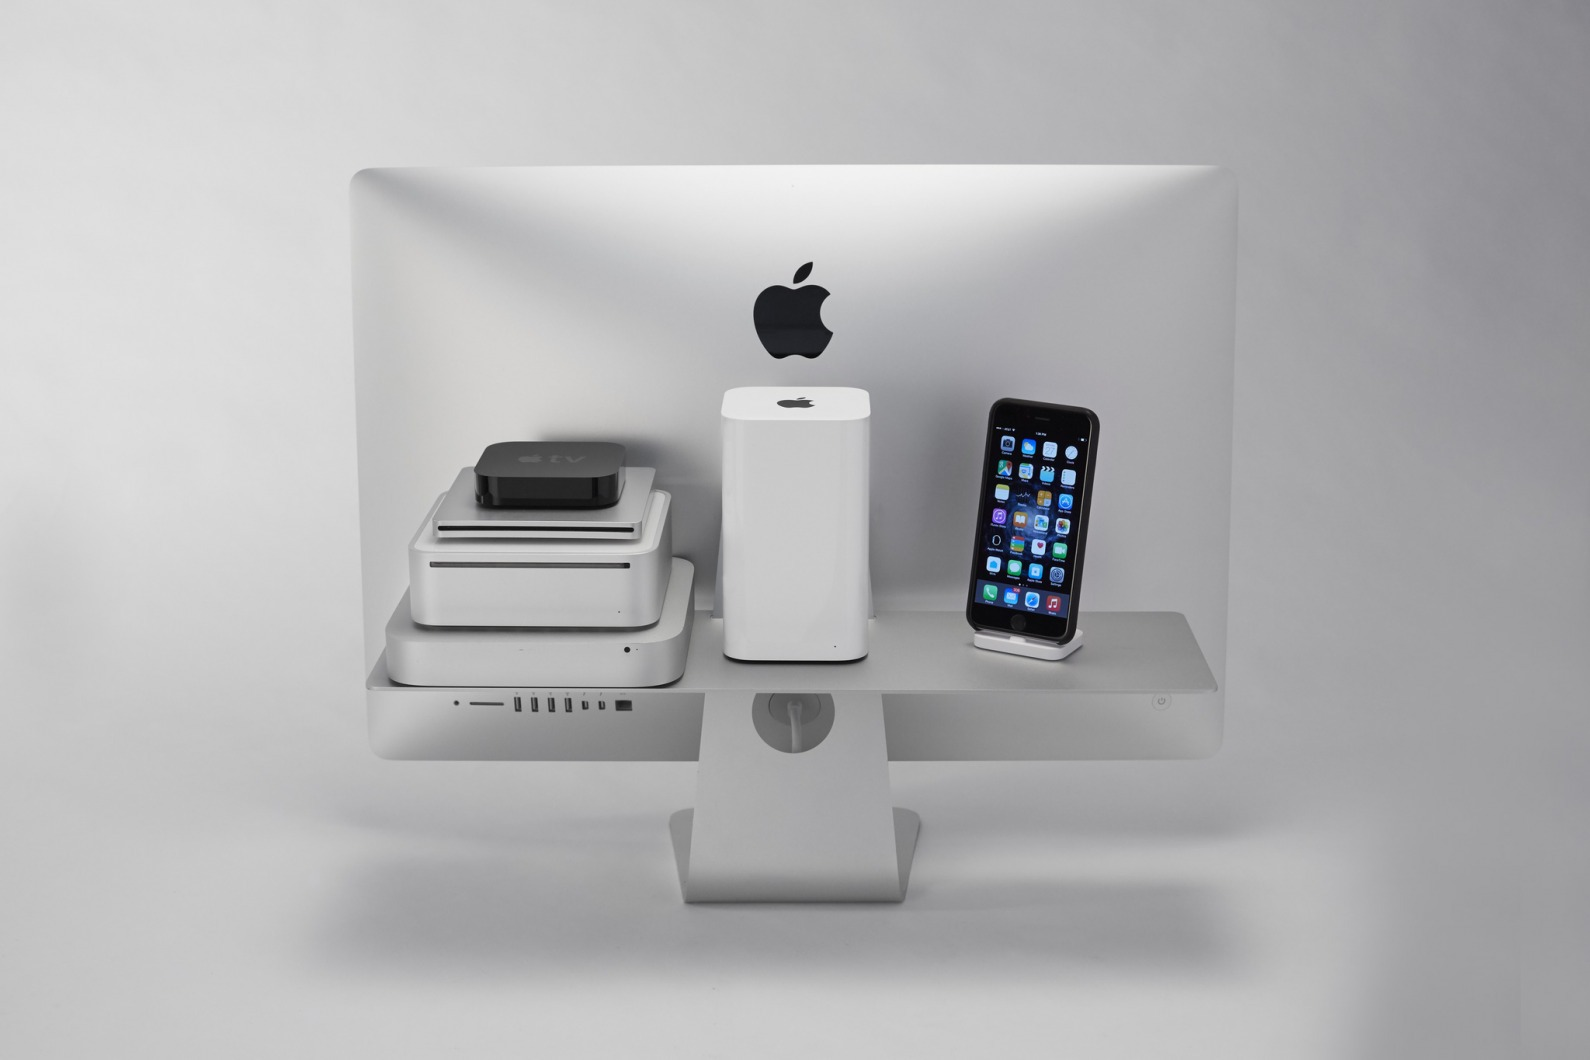 If You Re Looking For An Elegant Solution To Freeing Up Some Desk E While Giving Your Imac A Real World Task Of Holding Items On Behalf